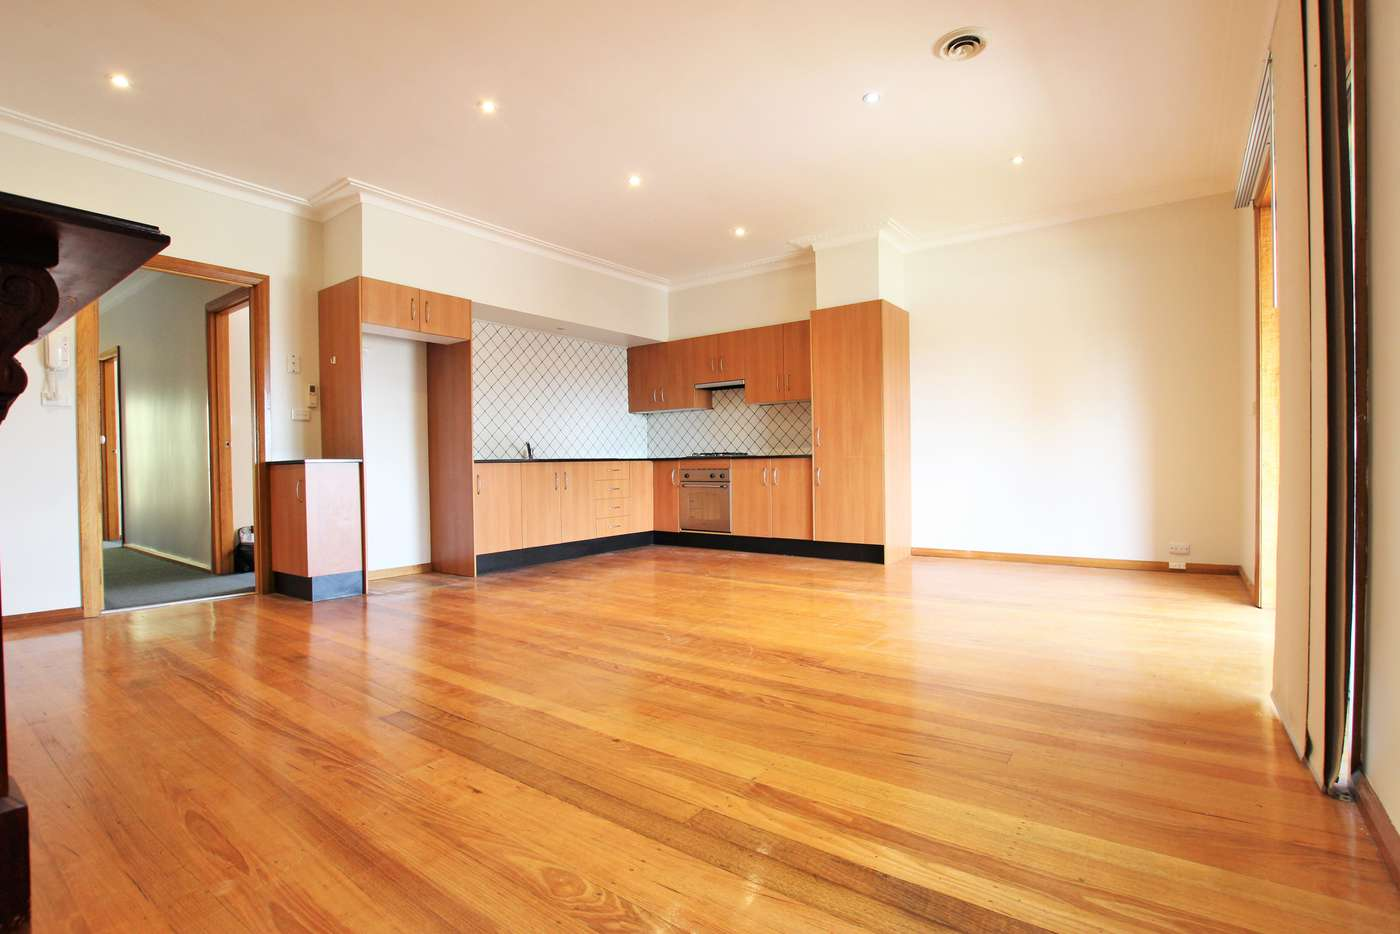 Main view of Homely apartment listing, 2/86 McBryde Street, Fawkner VIC 3060